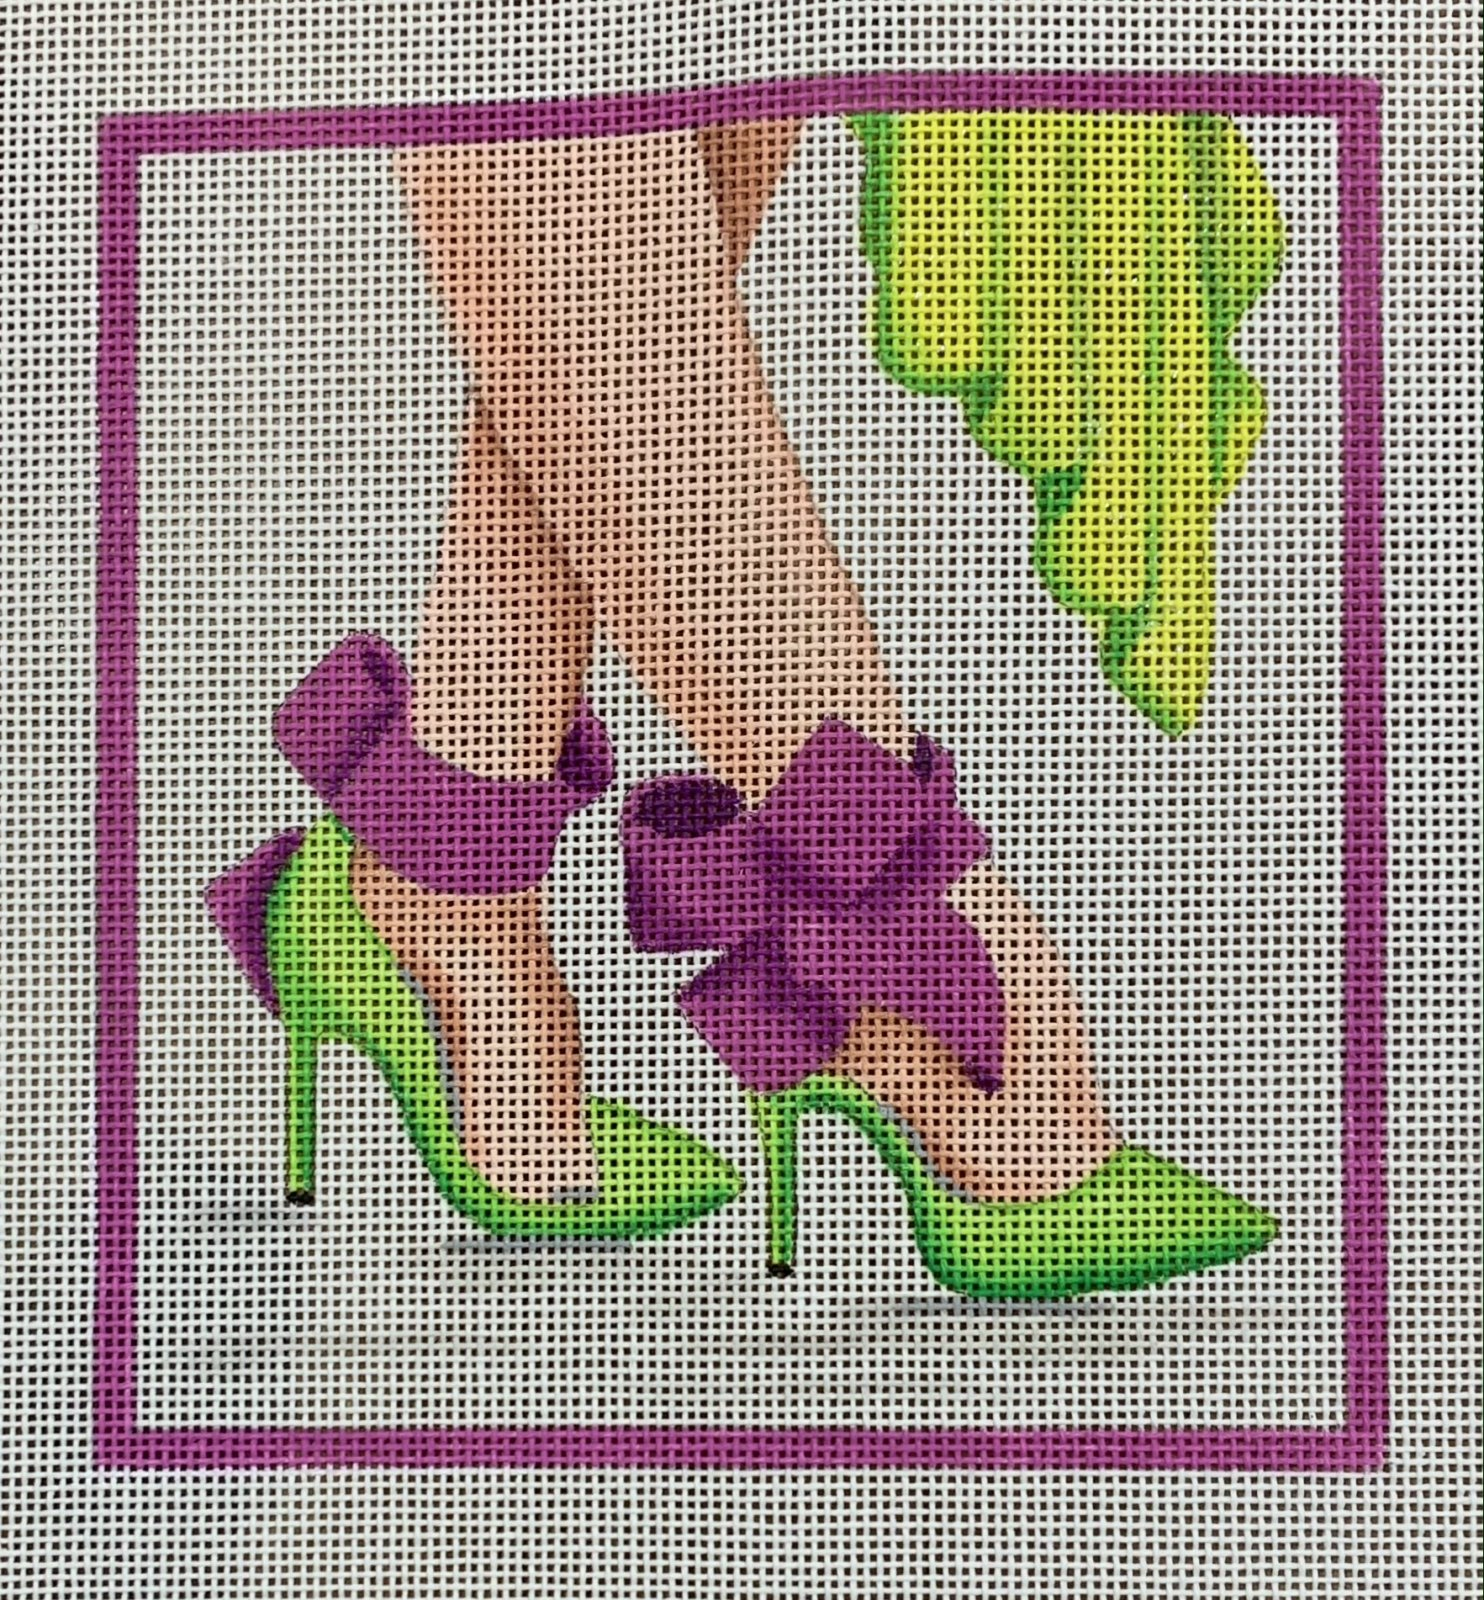 Here's Looking at Shoe - High Heels w/ Ankle-Strap Bows - lime & orchid